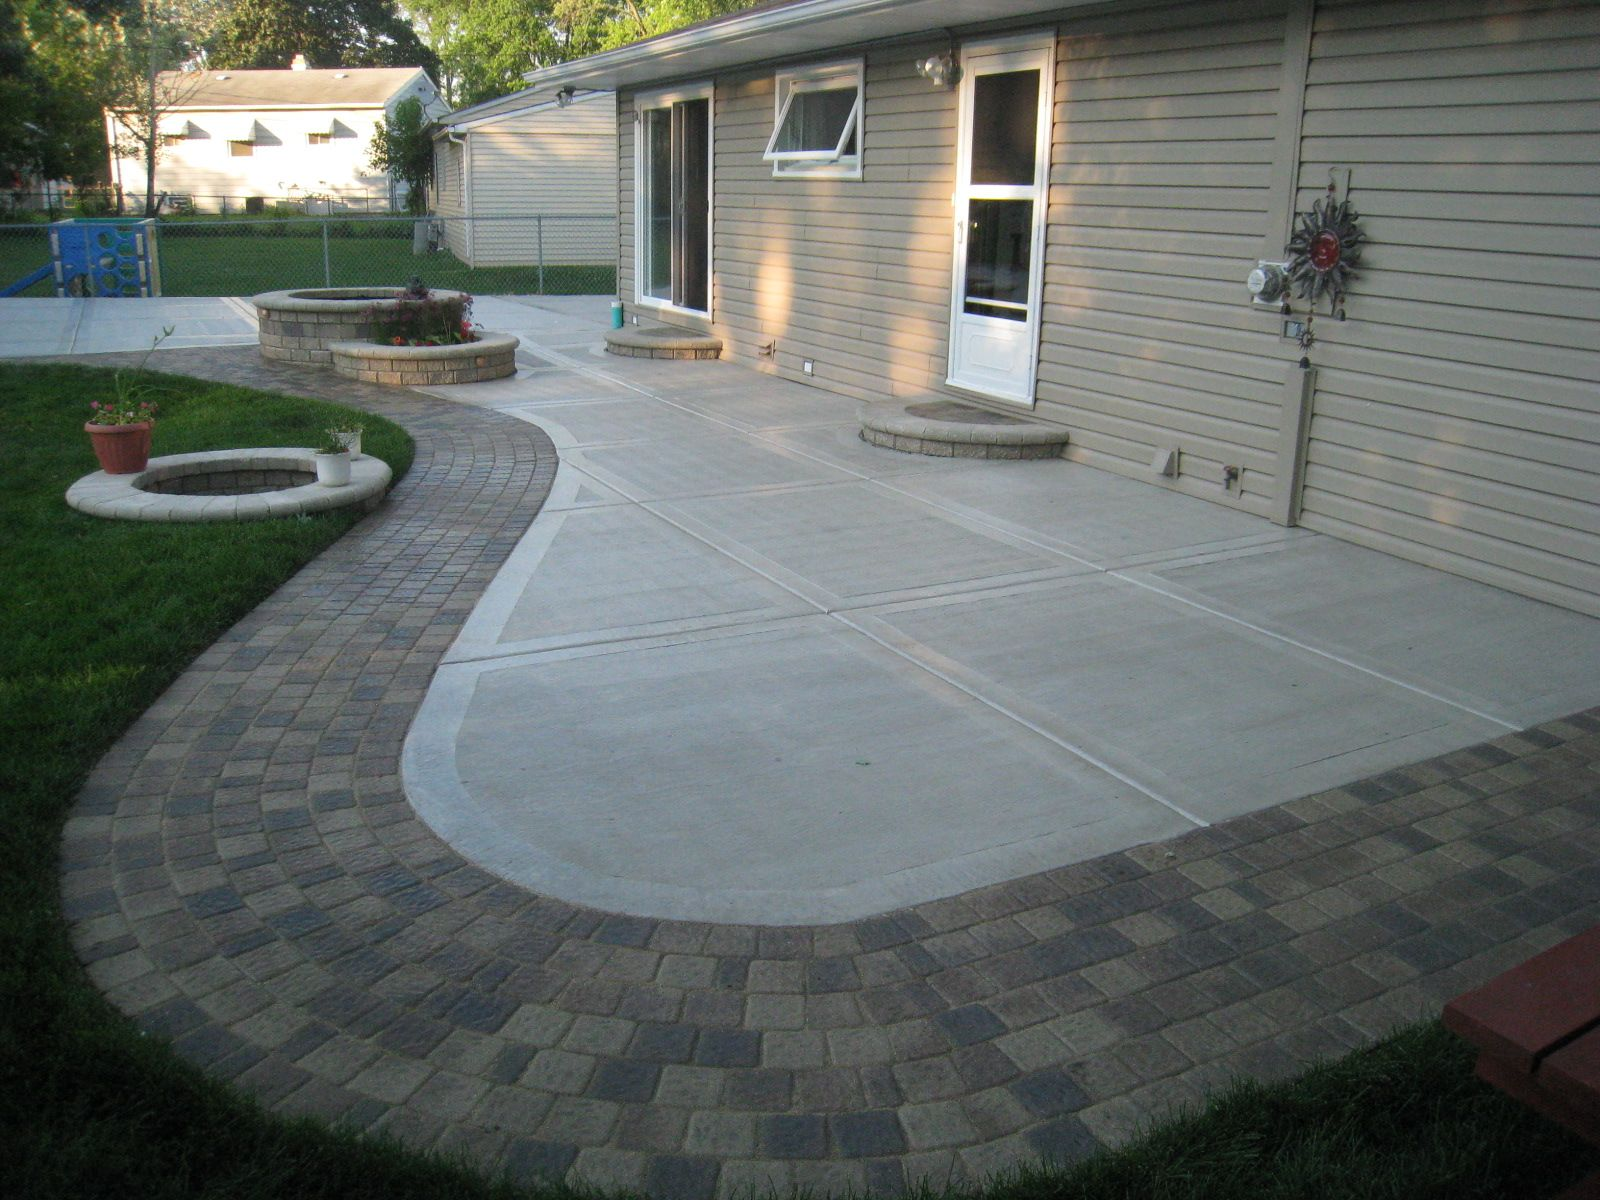 Back yard concrete patio ideas concrete patio california finish and unilock old greenwich - Paver designs for backyard ...